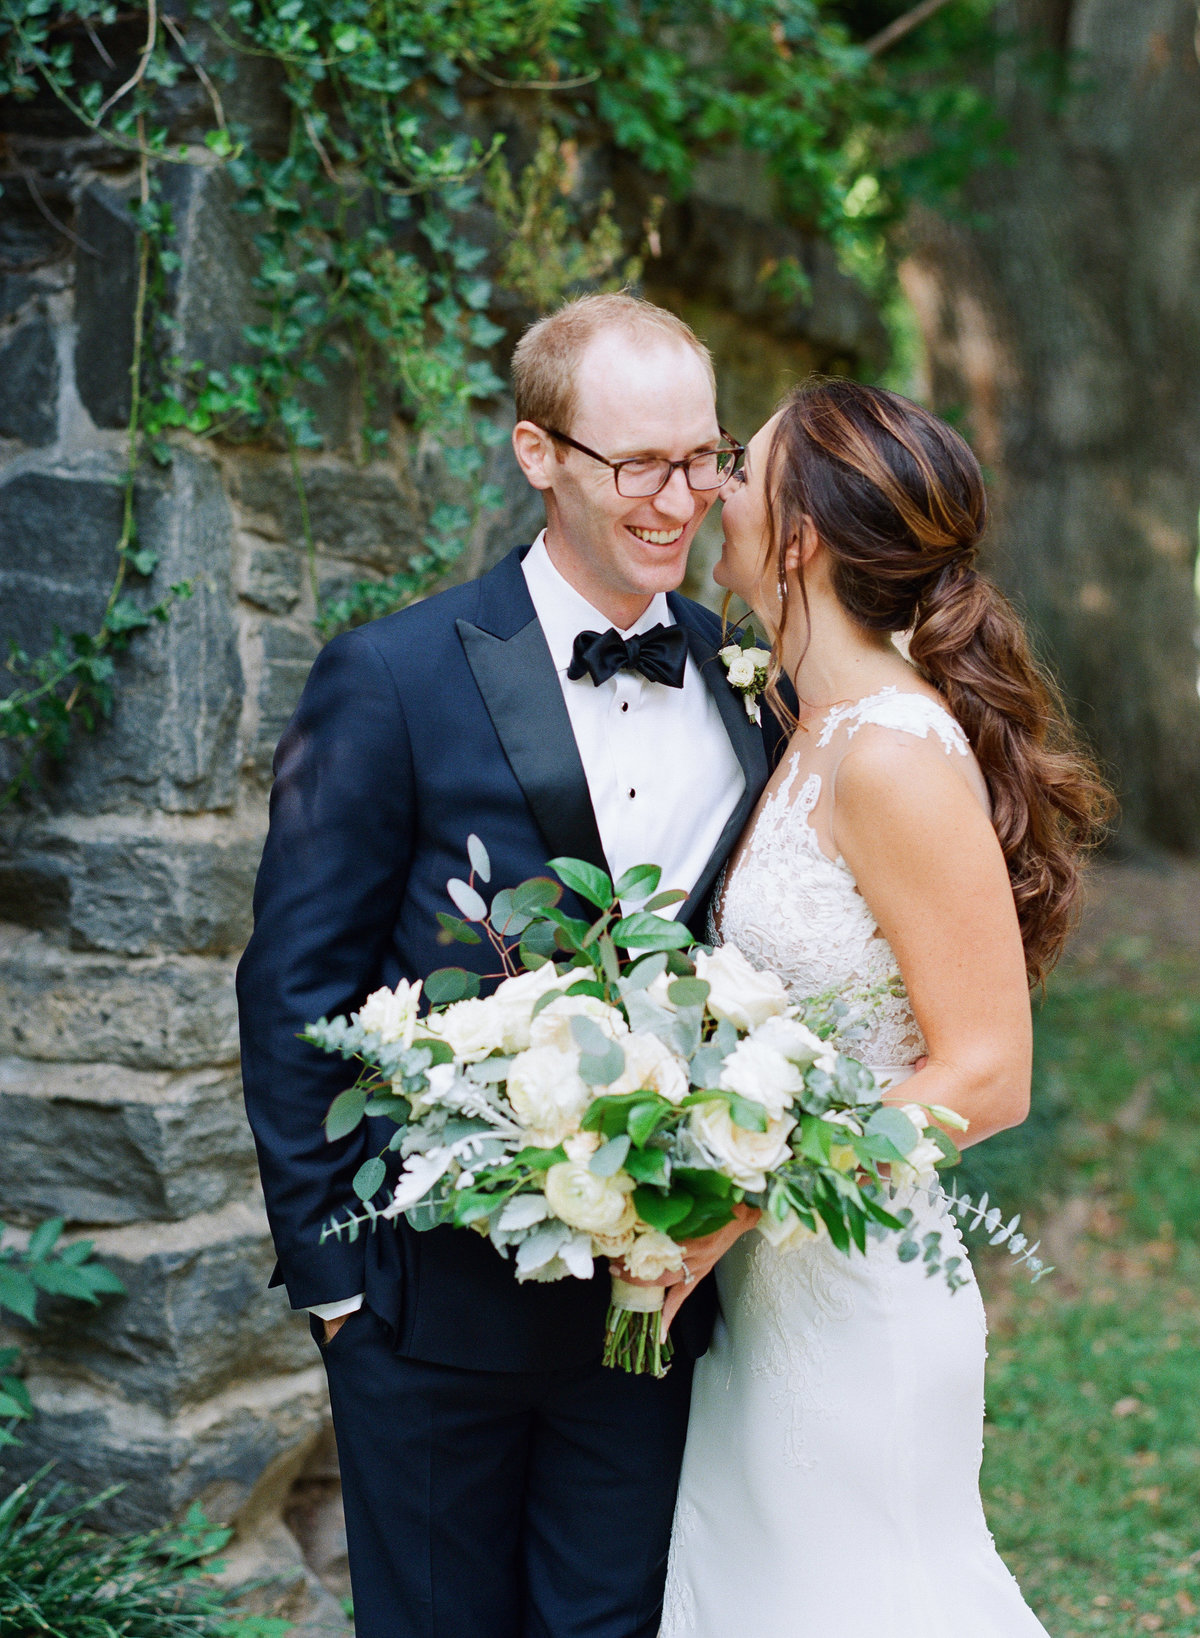 Elegant Bride & Groom in Piedmont Park